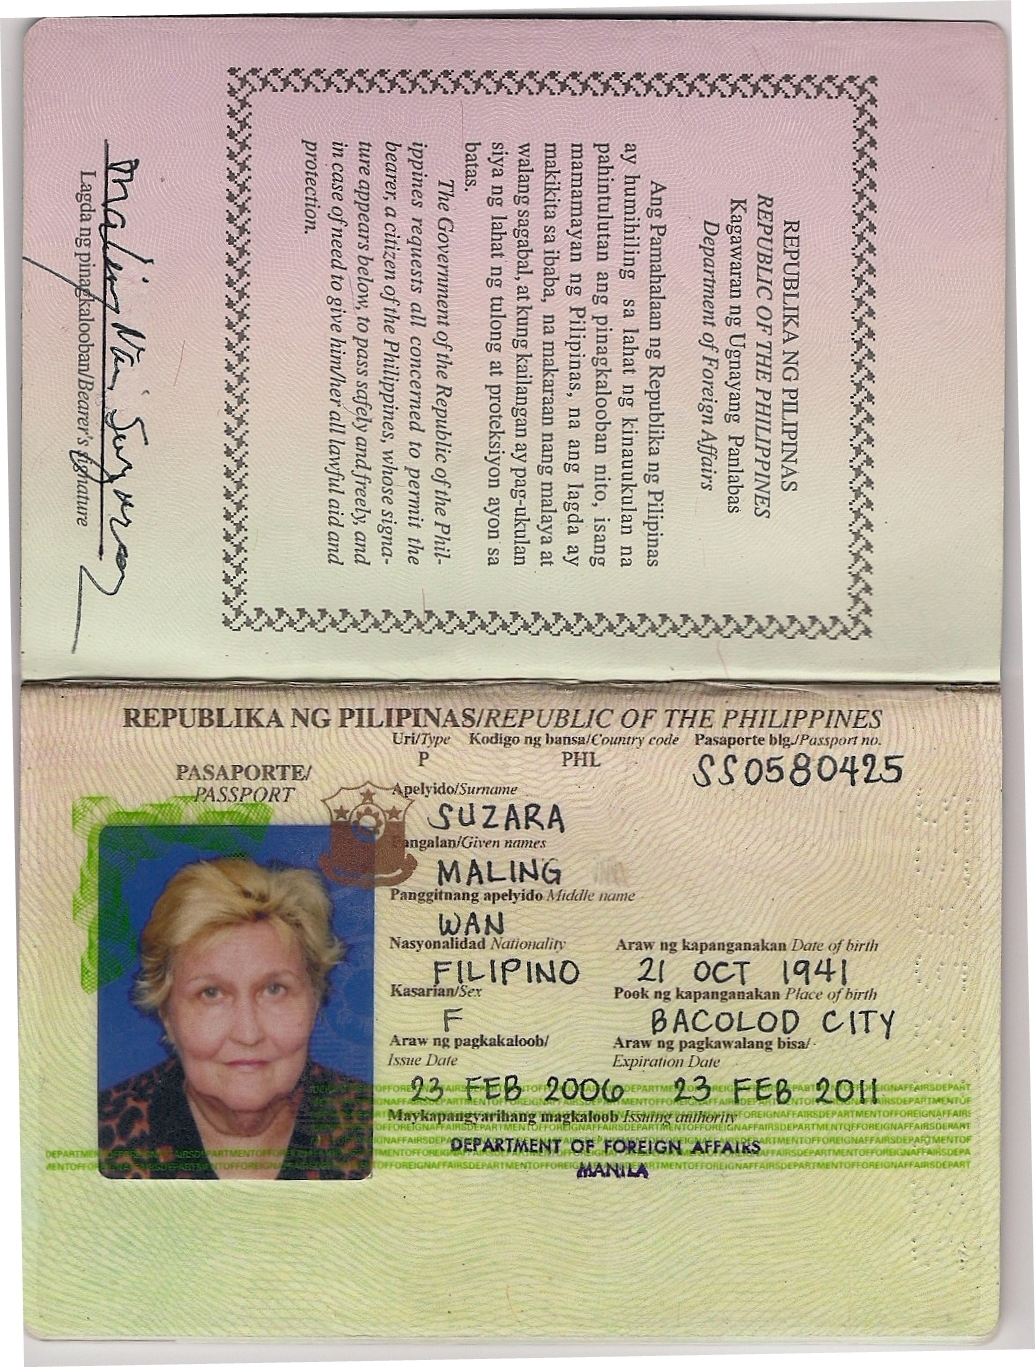 The false passport which Mary Swan used to enter Thailand some years ago. She was caught and jailed for this crime.  'Mary Swan' came to Malta using another false passport - a Paraguayan passport in the name of Eloisa Chihan.